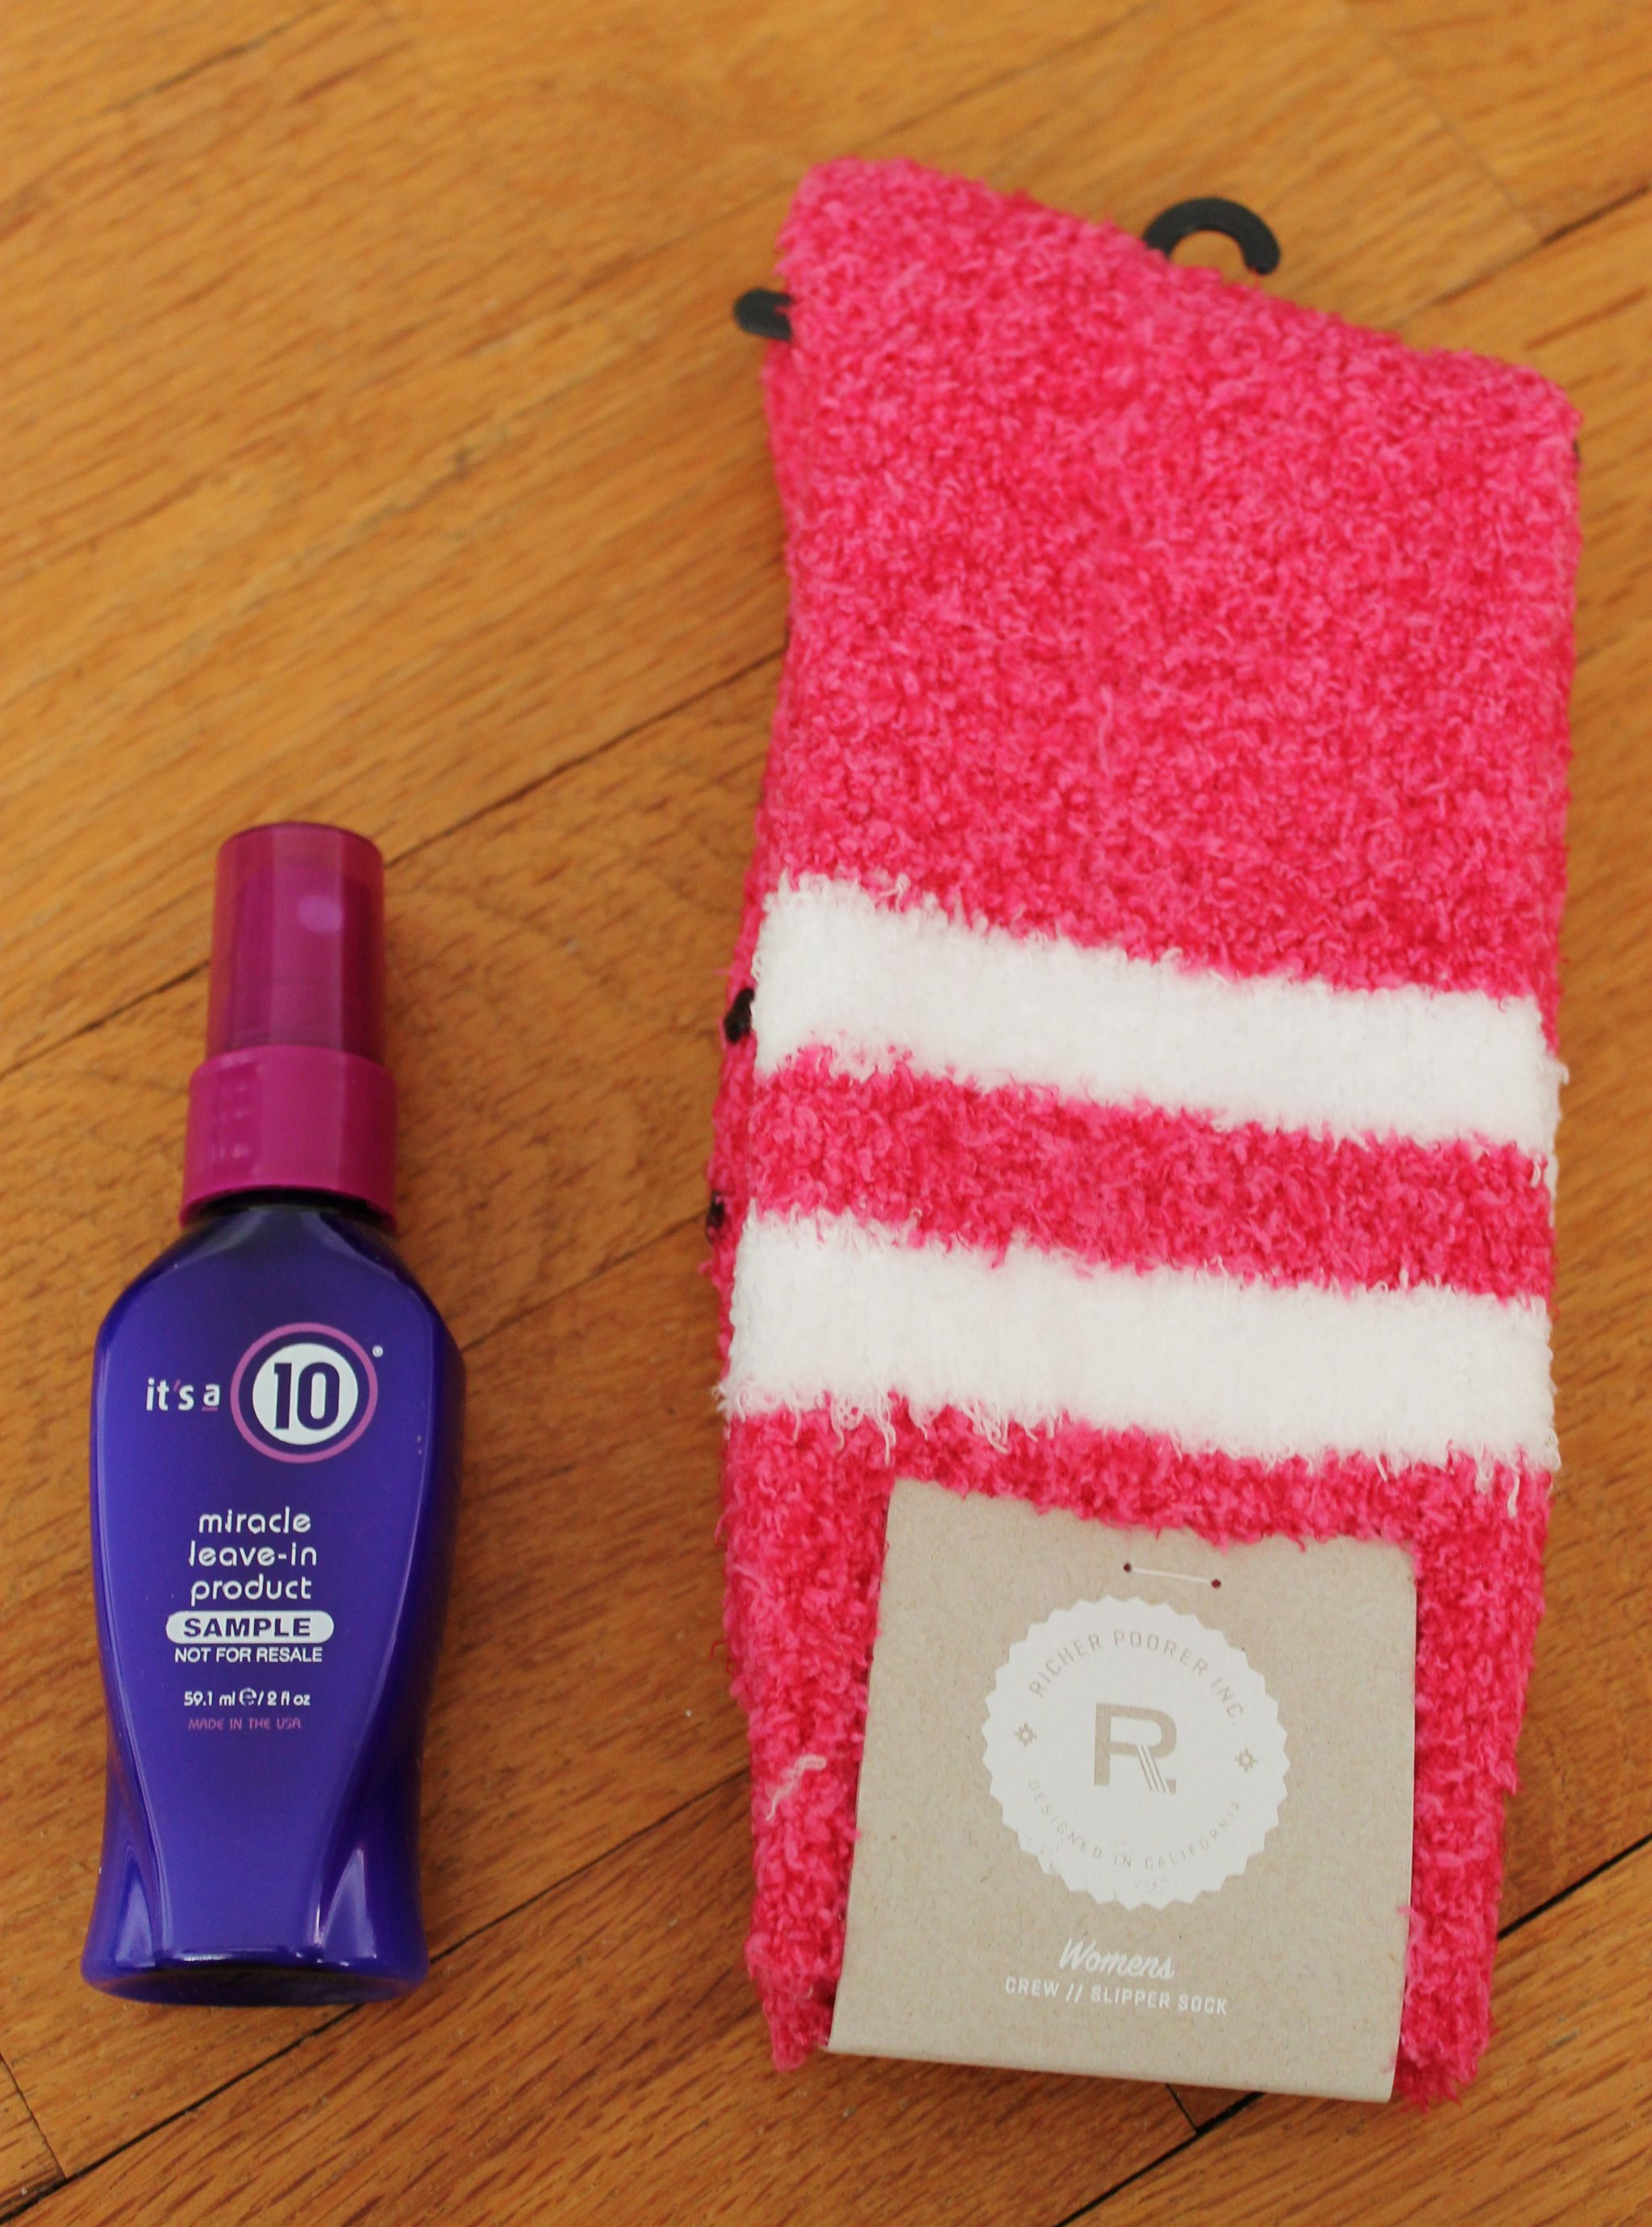 Popsugar Must Have October box review It's a 10 leave in product and Hope Slipper Socks